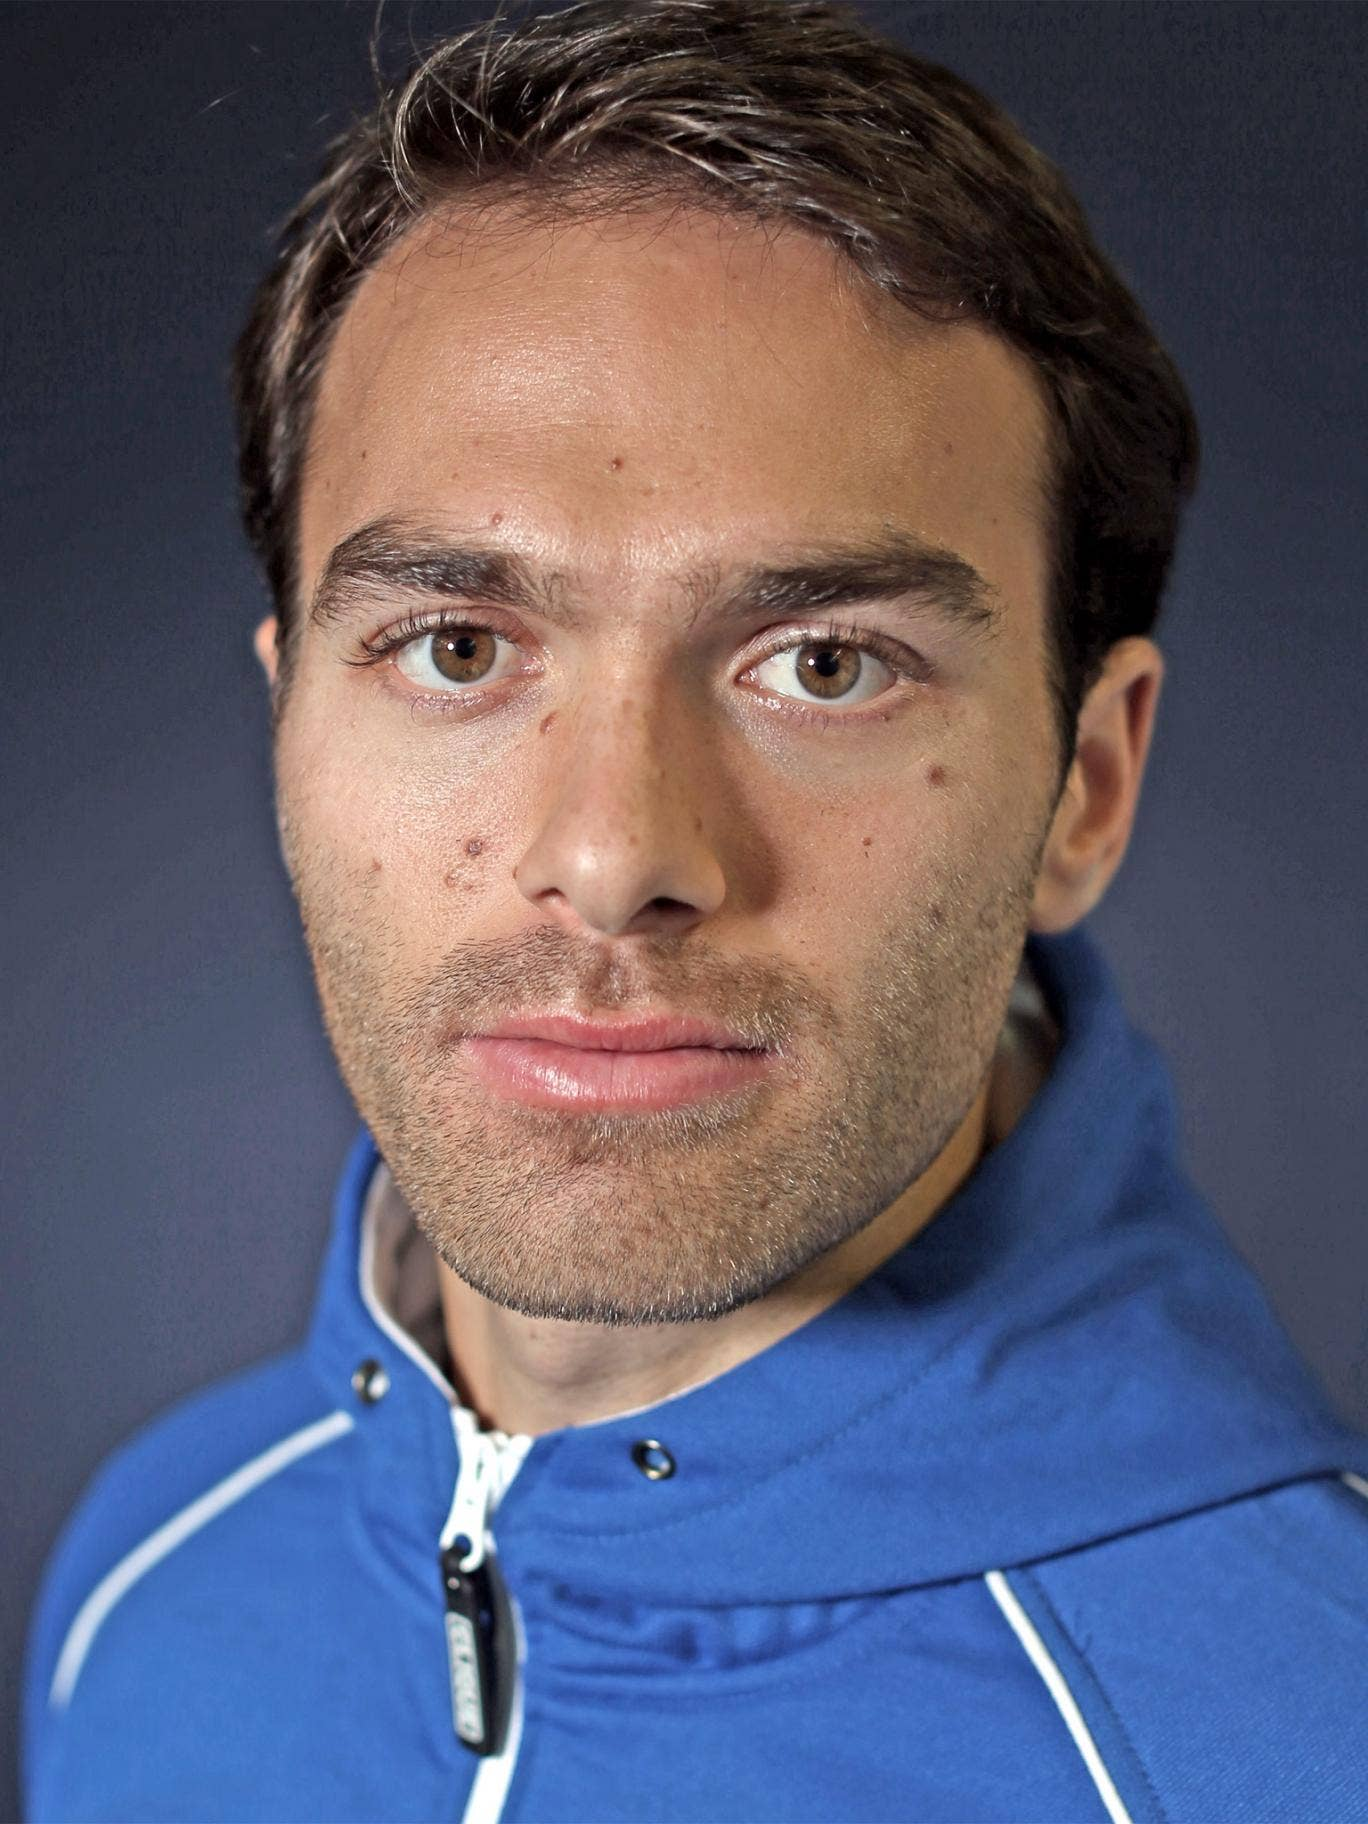 Ross Hutchins was diagnosed with cancer late last month